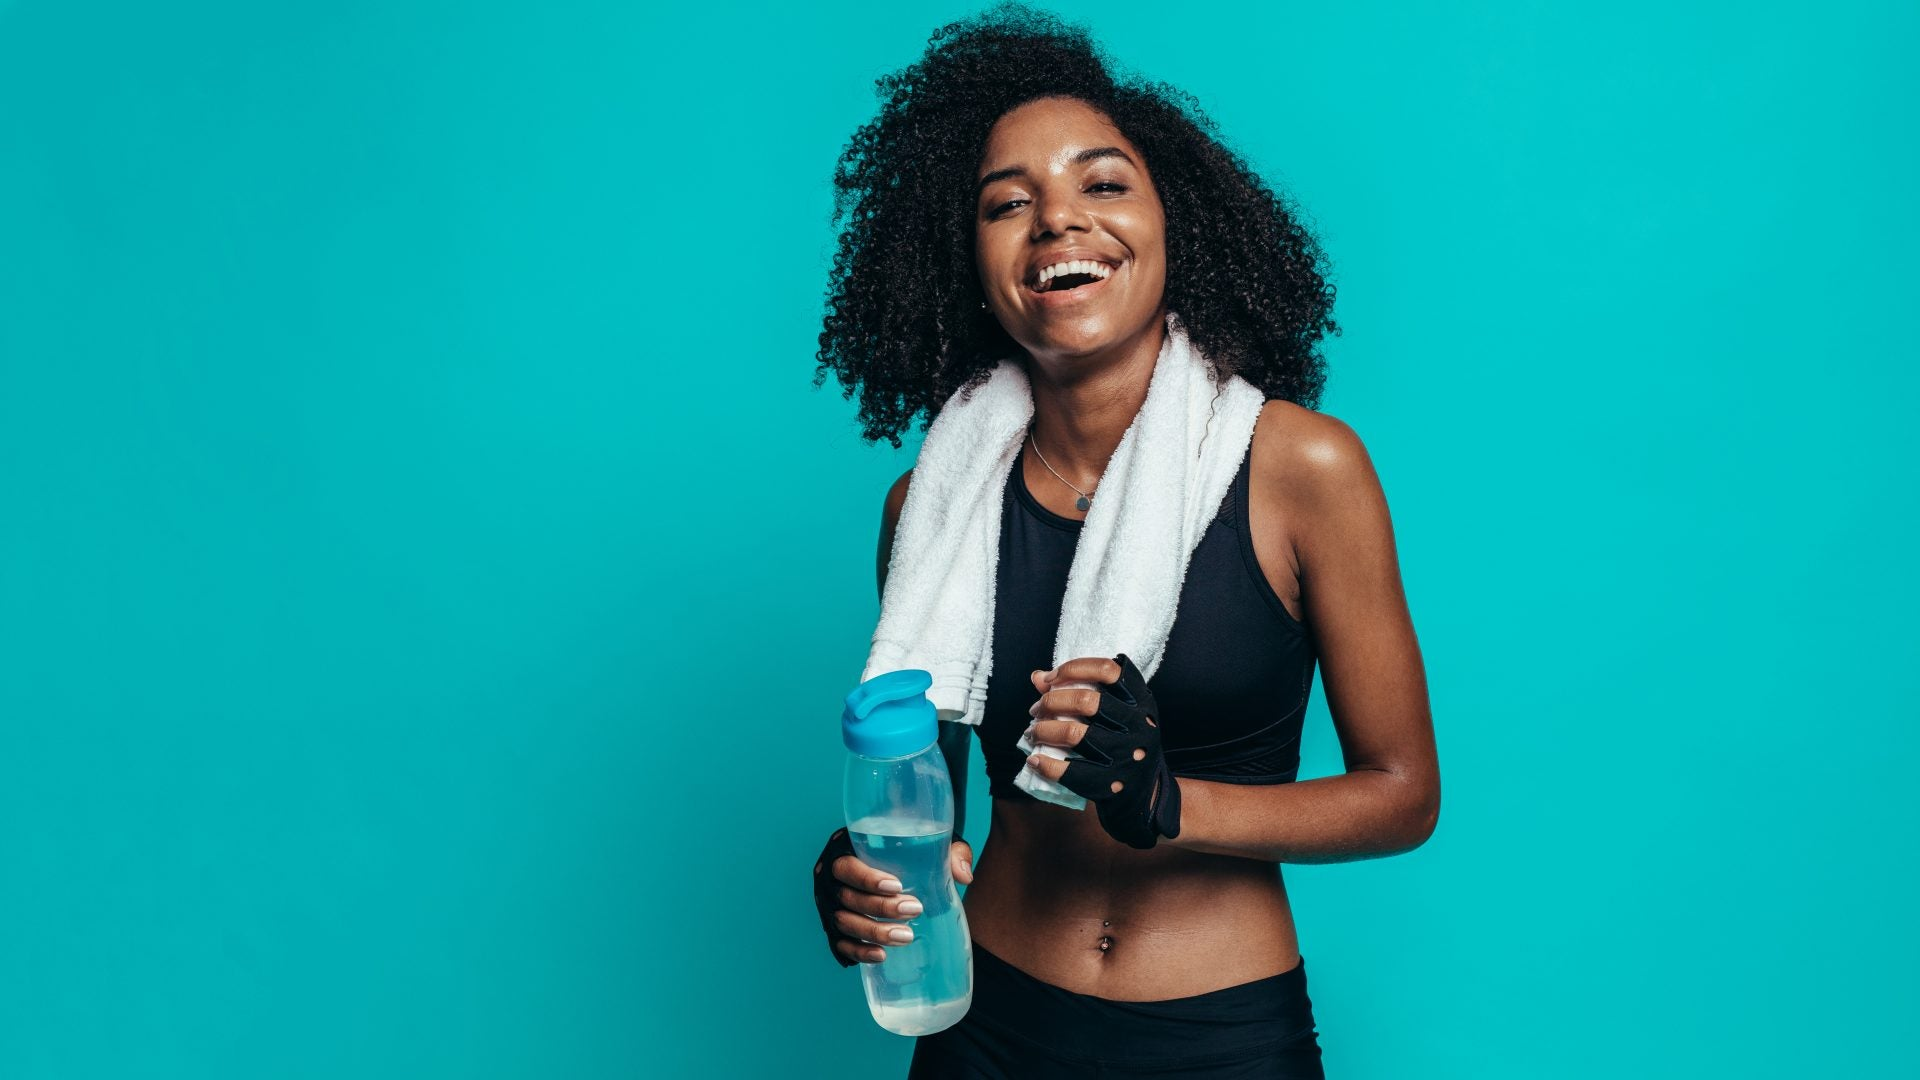 7 Tips For Getting Fit Without Hitting The Gym